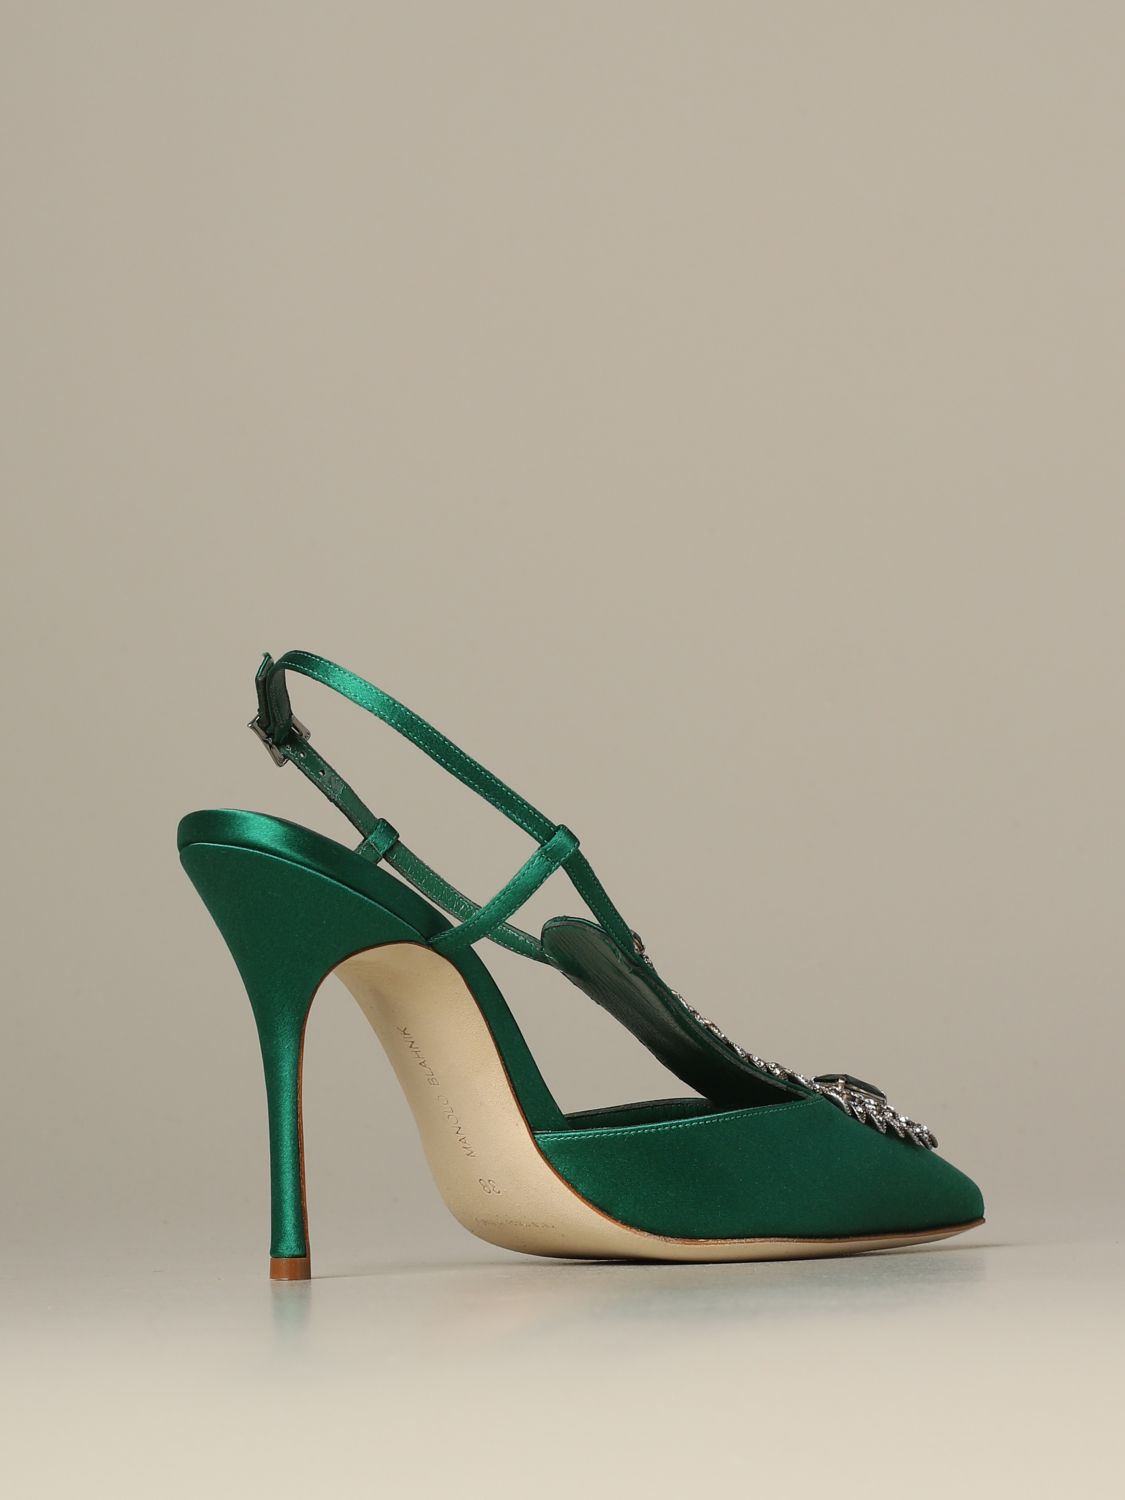 Pumps Manolo Blahnik: Shoes women Manolo Blahnik emerald 4